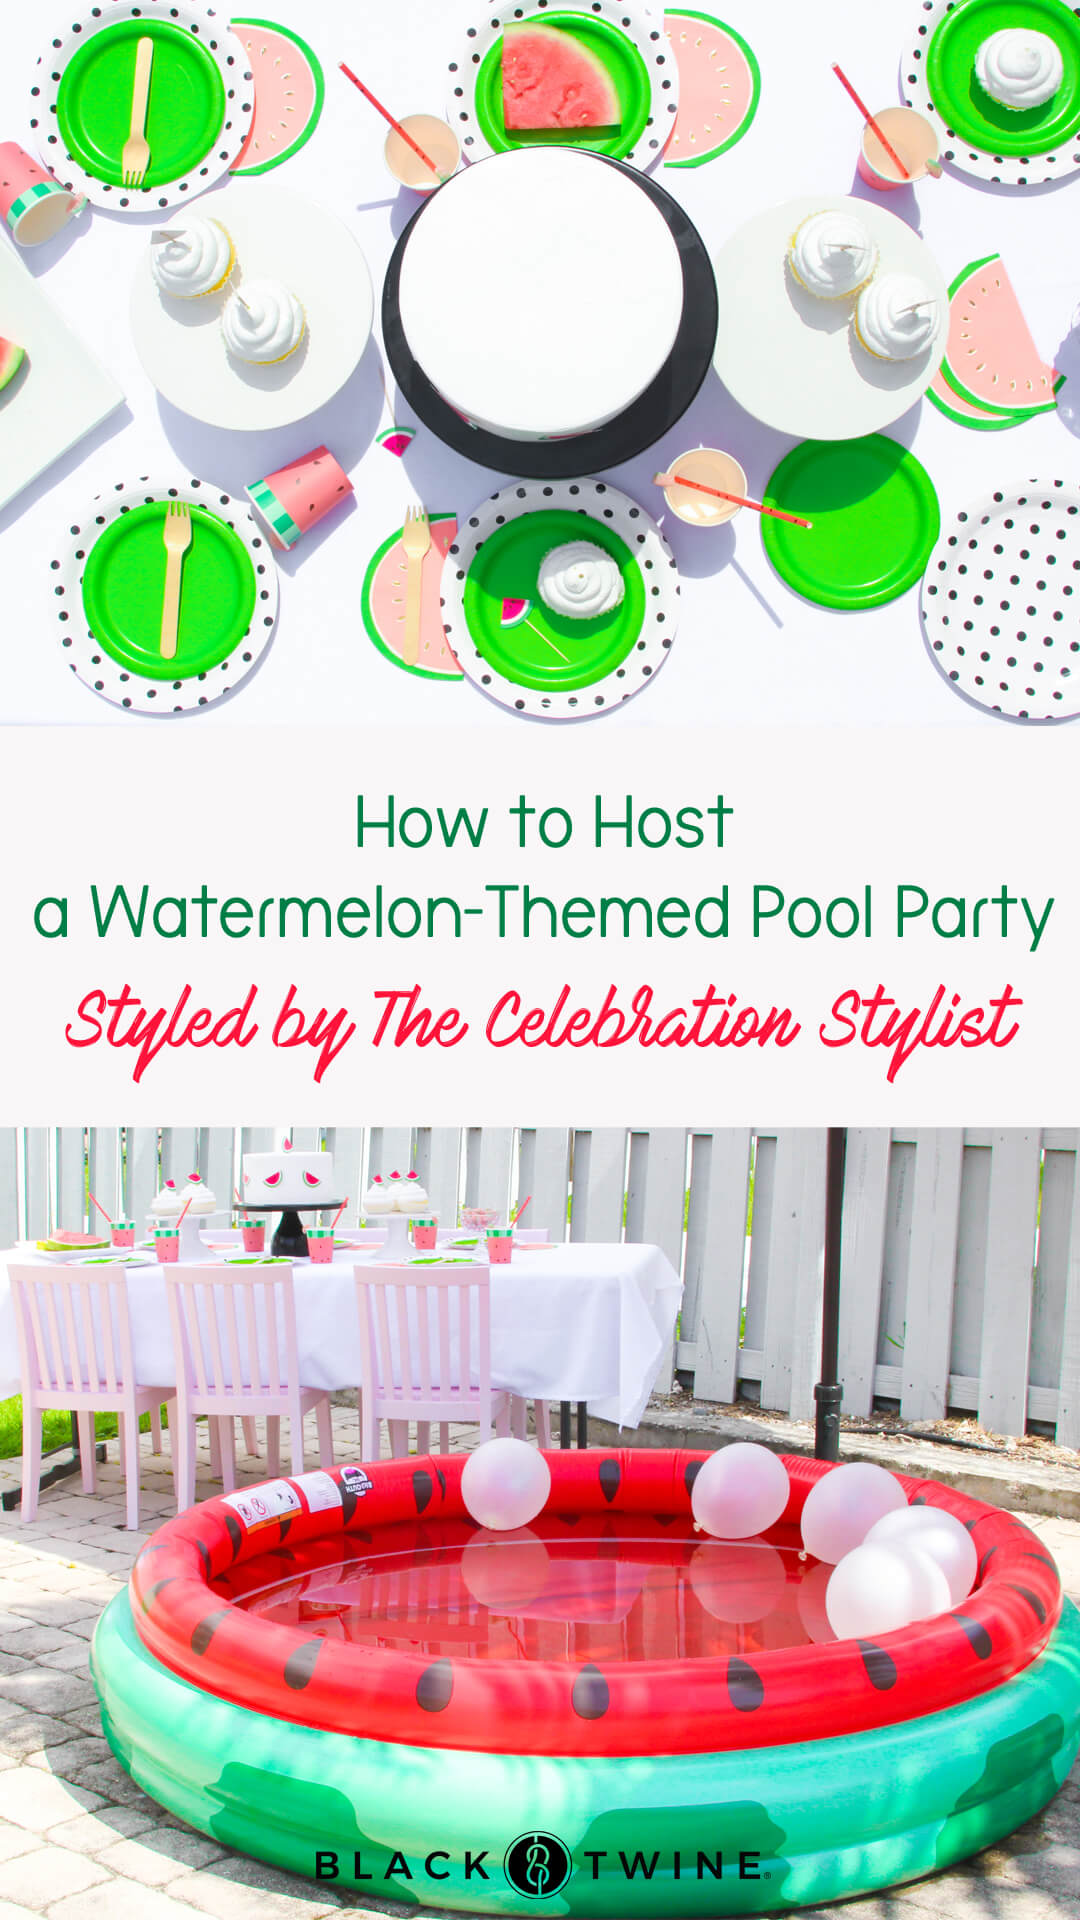 Tablescape, Watermelon Pool from a Watermelon-Themed Pool Party Styled by The Celebration Stylist In Collaboration with Evite